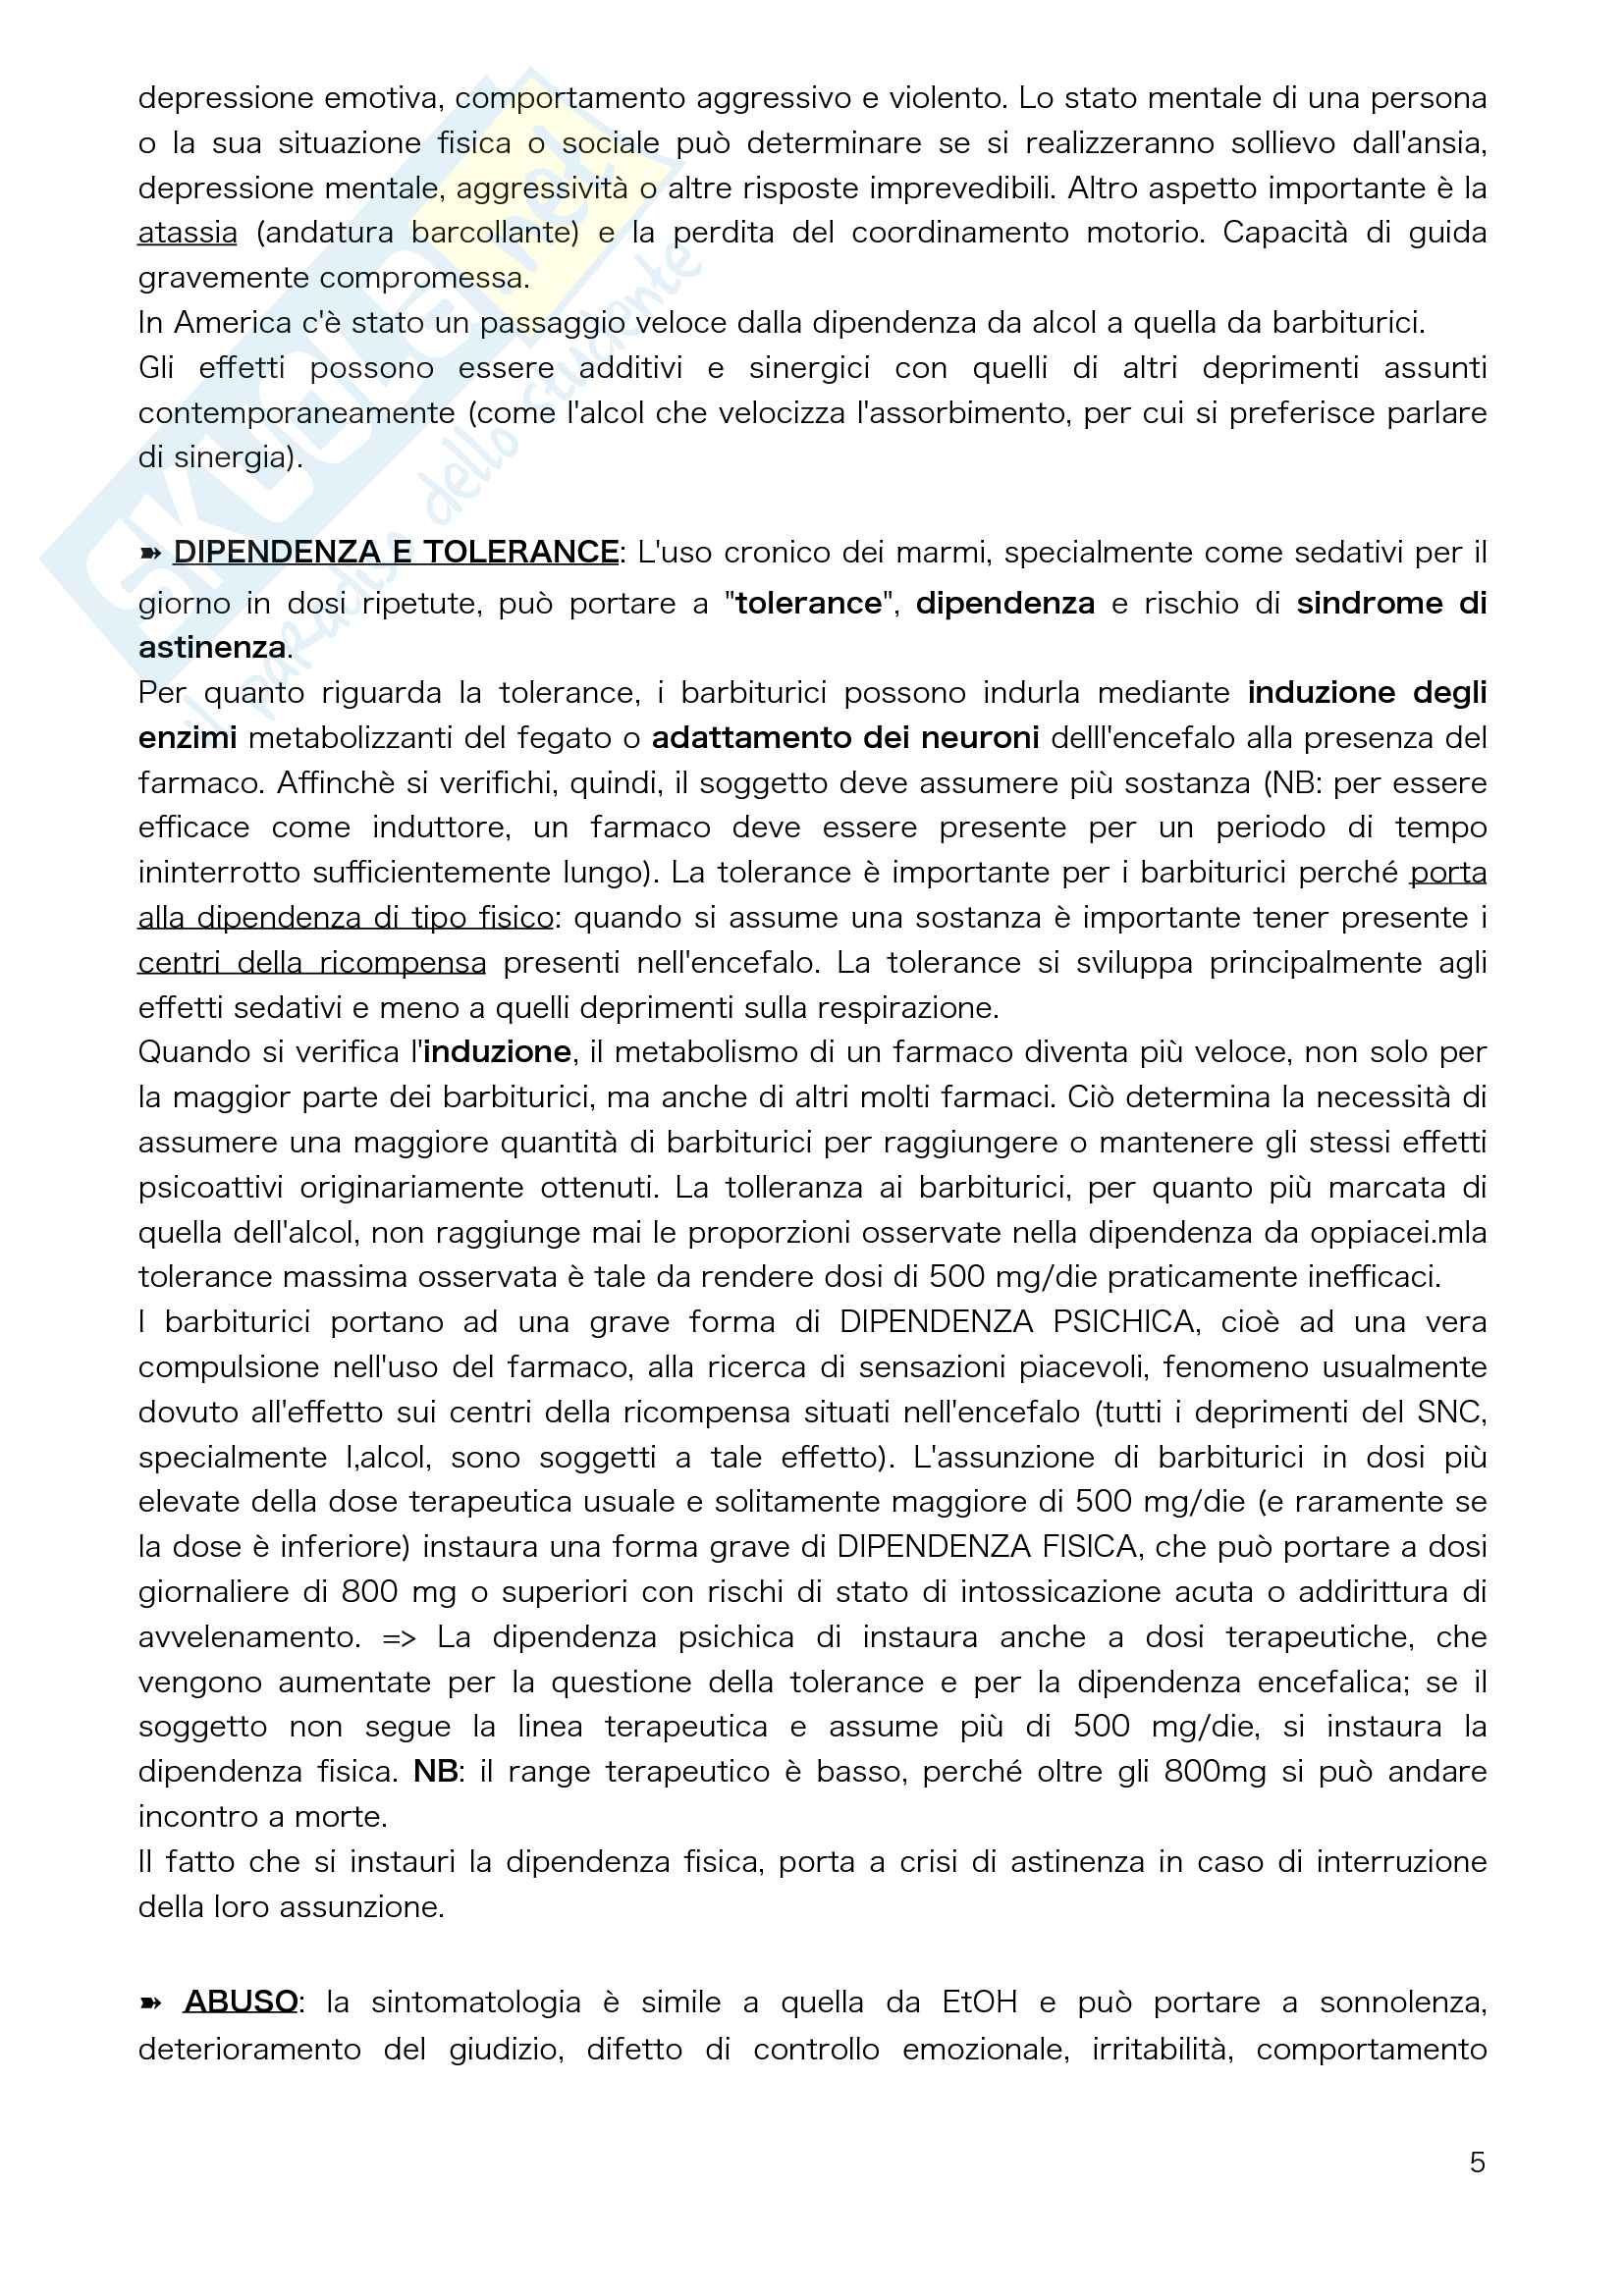 Chimica tossicologica Parte 2 Pag. 6